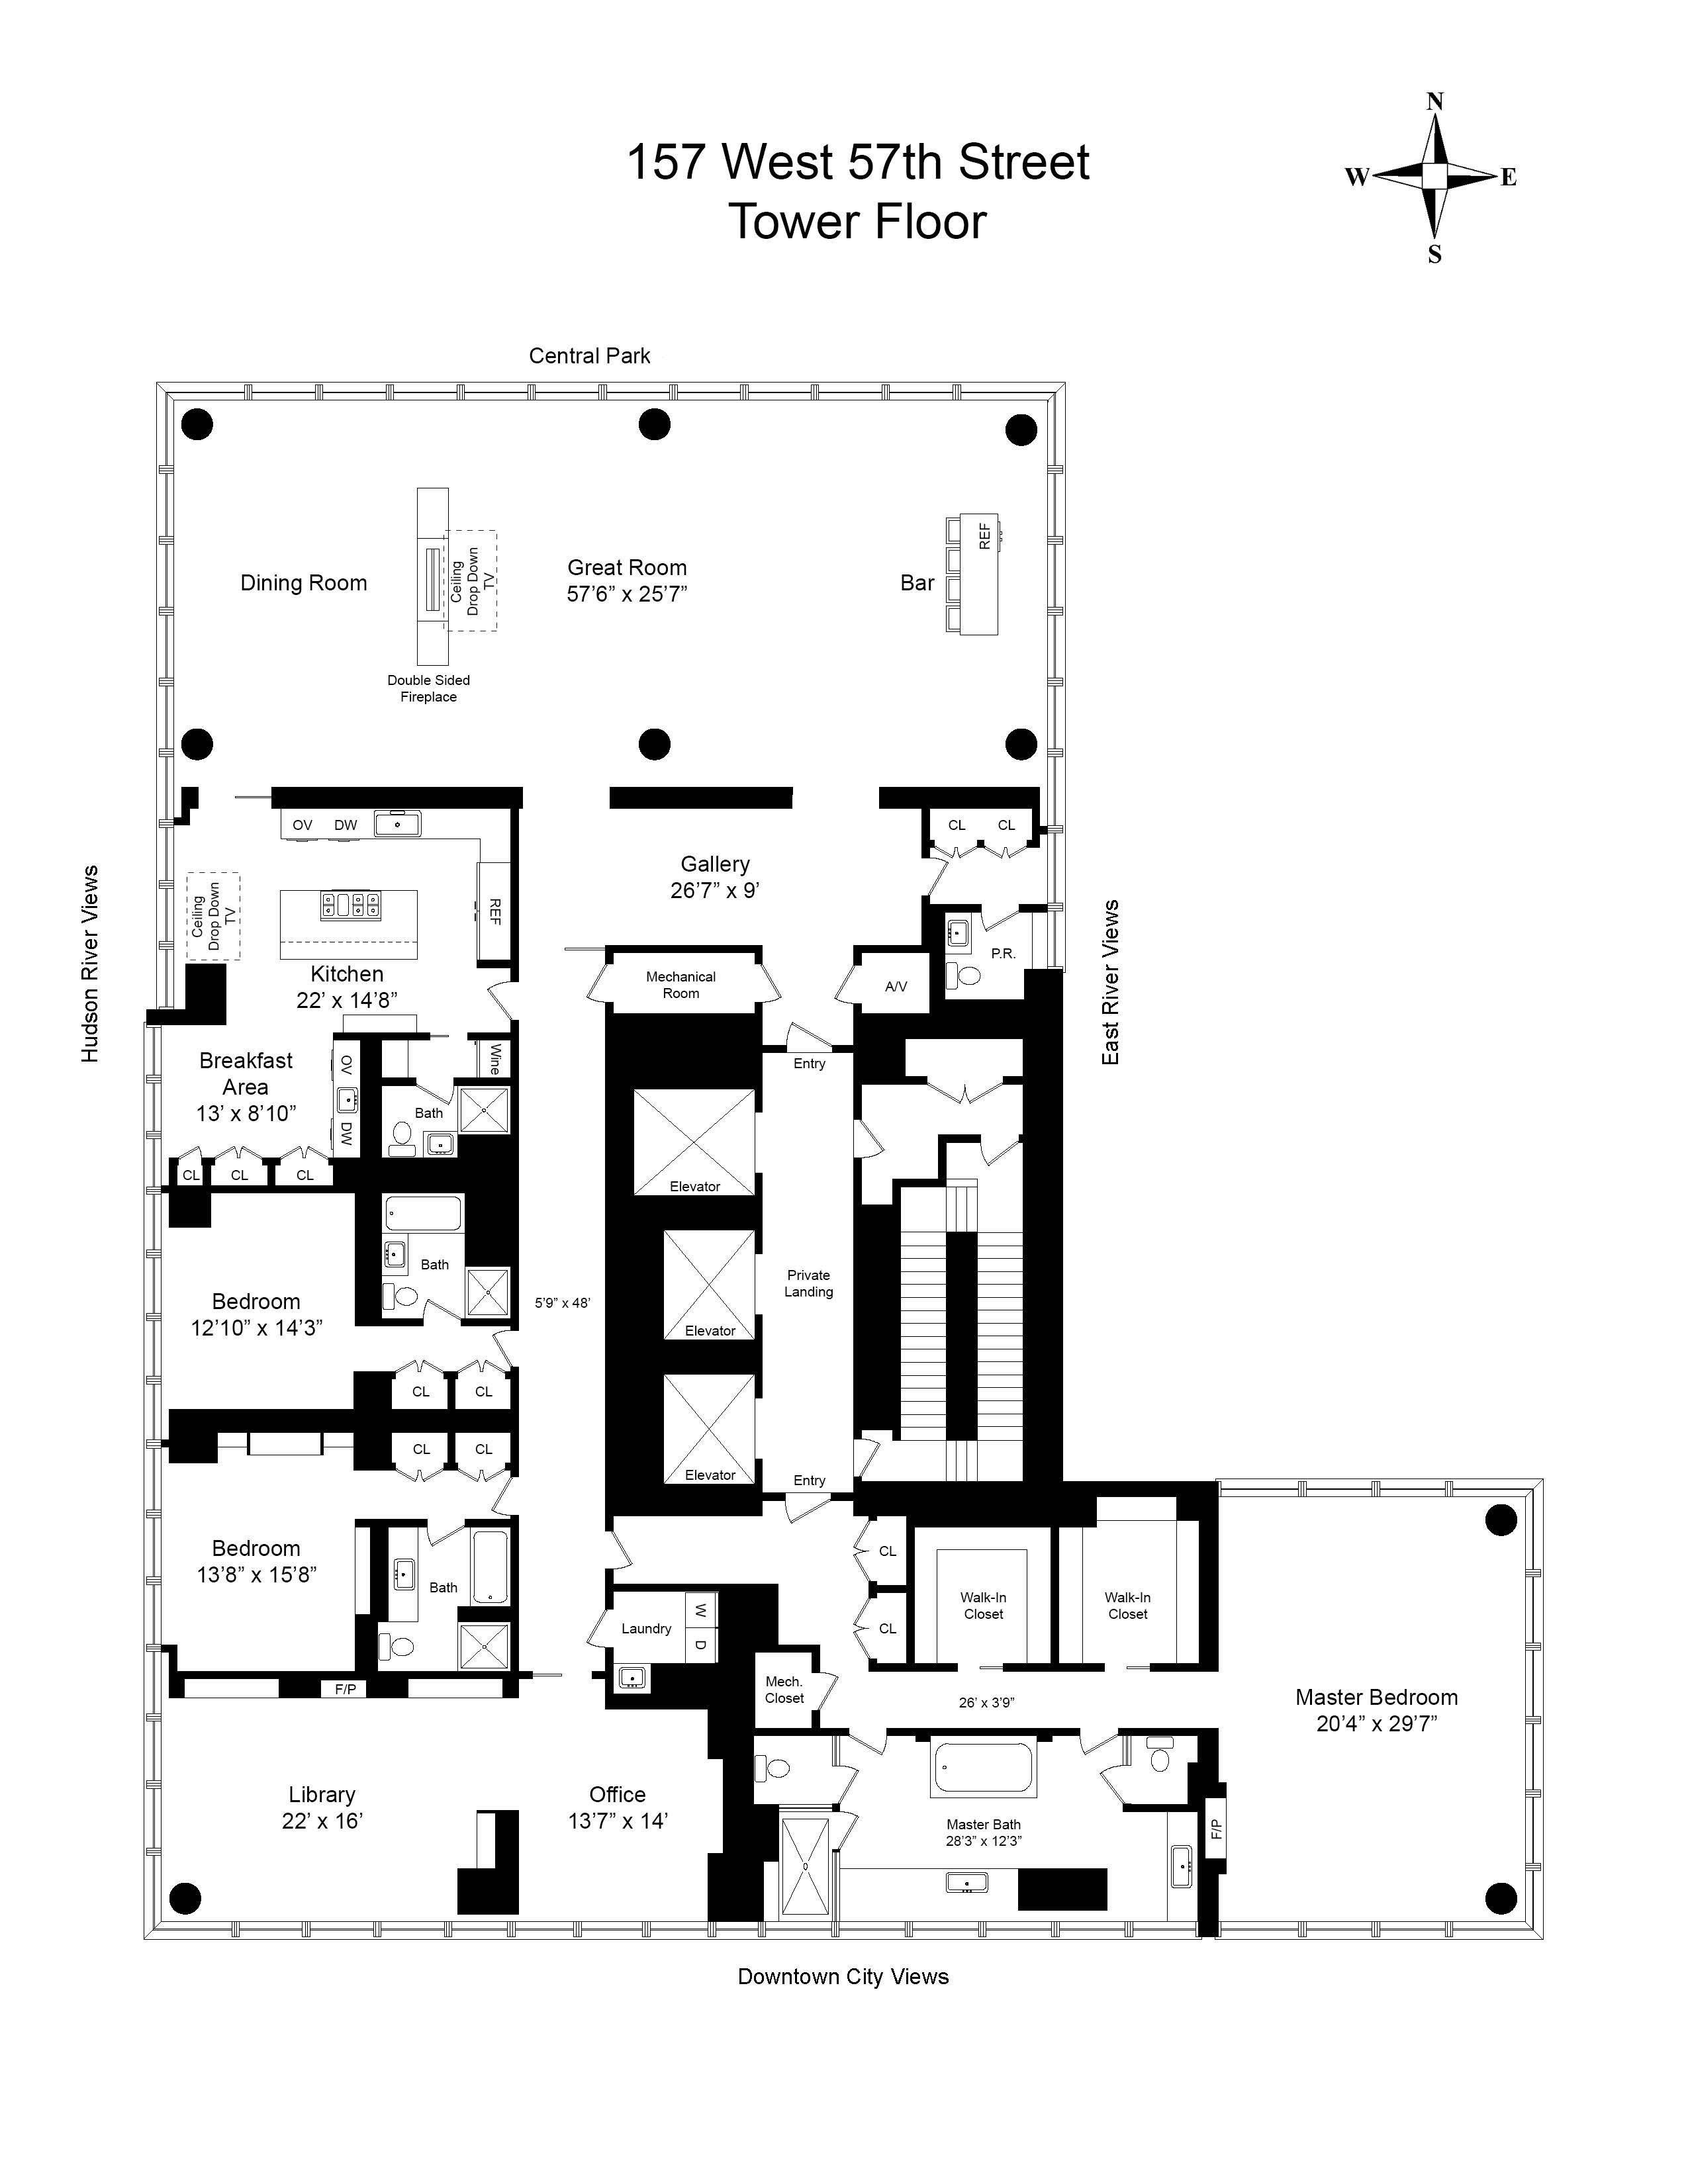 New York House Plans Awesome Floor Plan Image 0